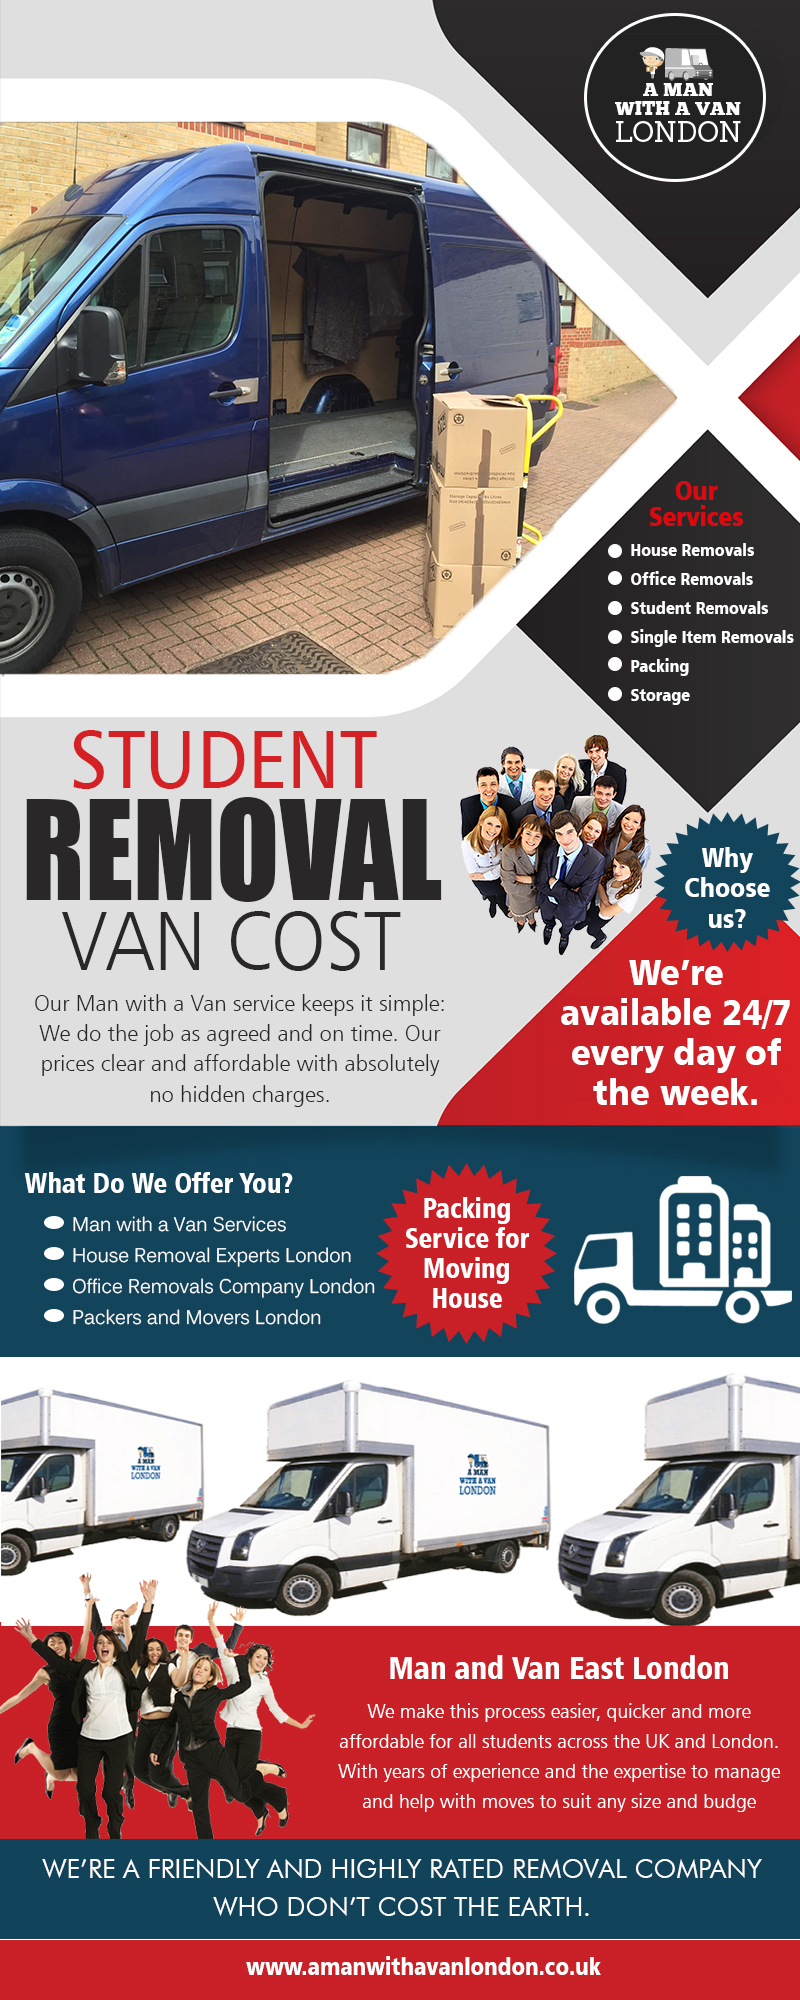 Student removal van cost